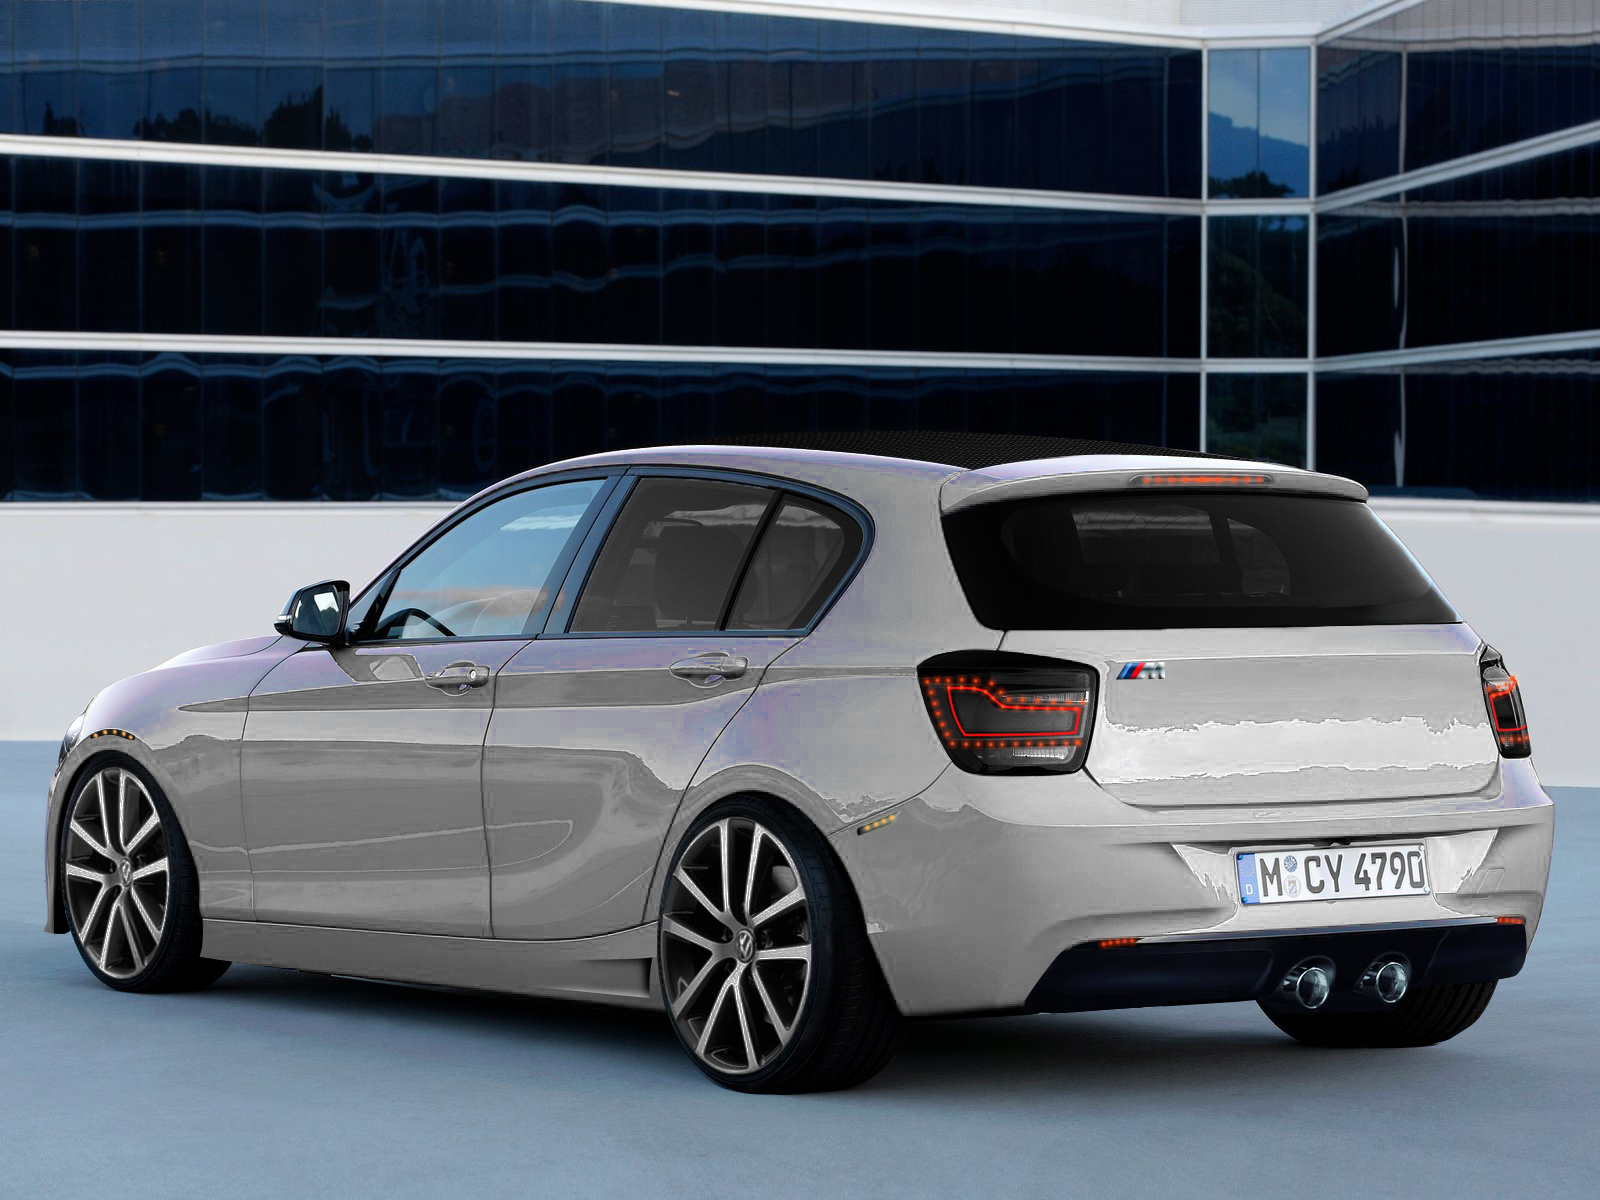 bmw 116i urban 1er deine automeile im netz. Black Bedroom Furniture Sets. Home Design Ideas